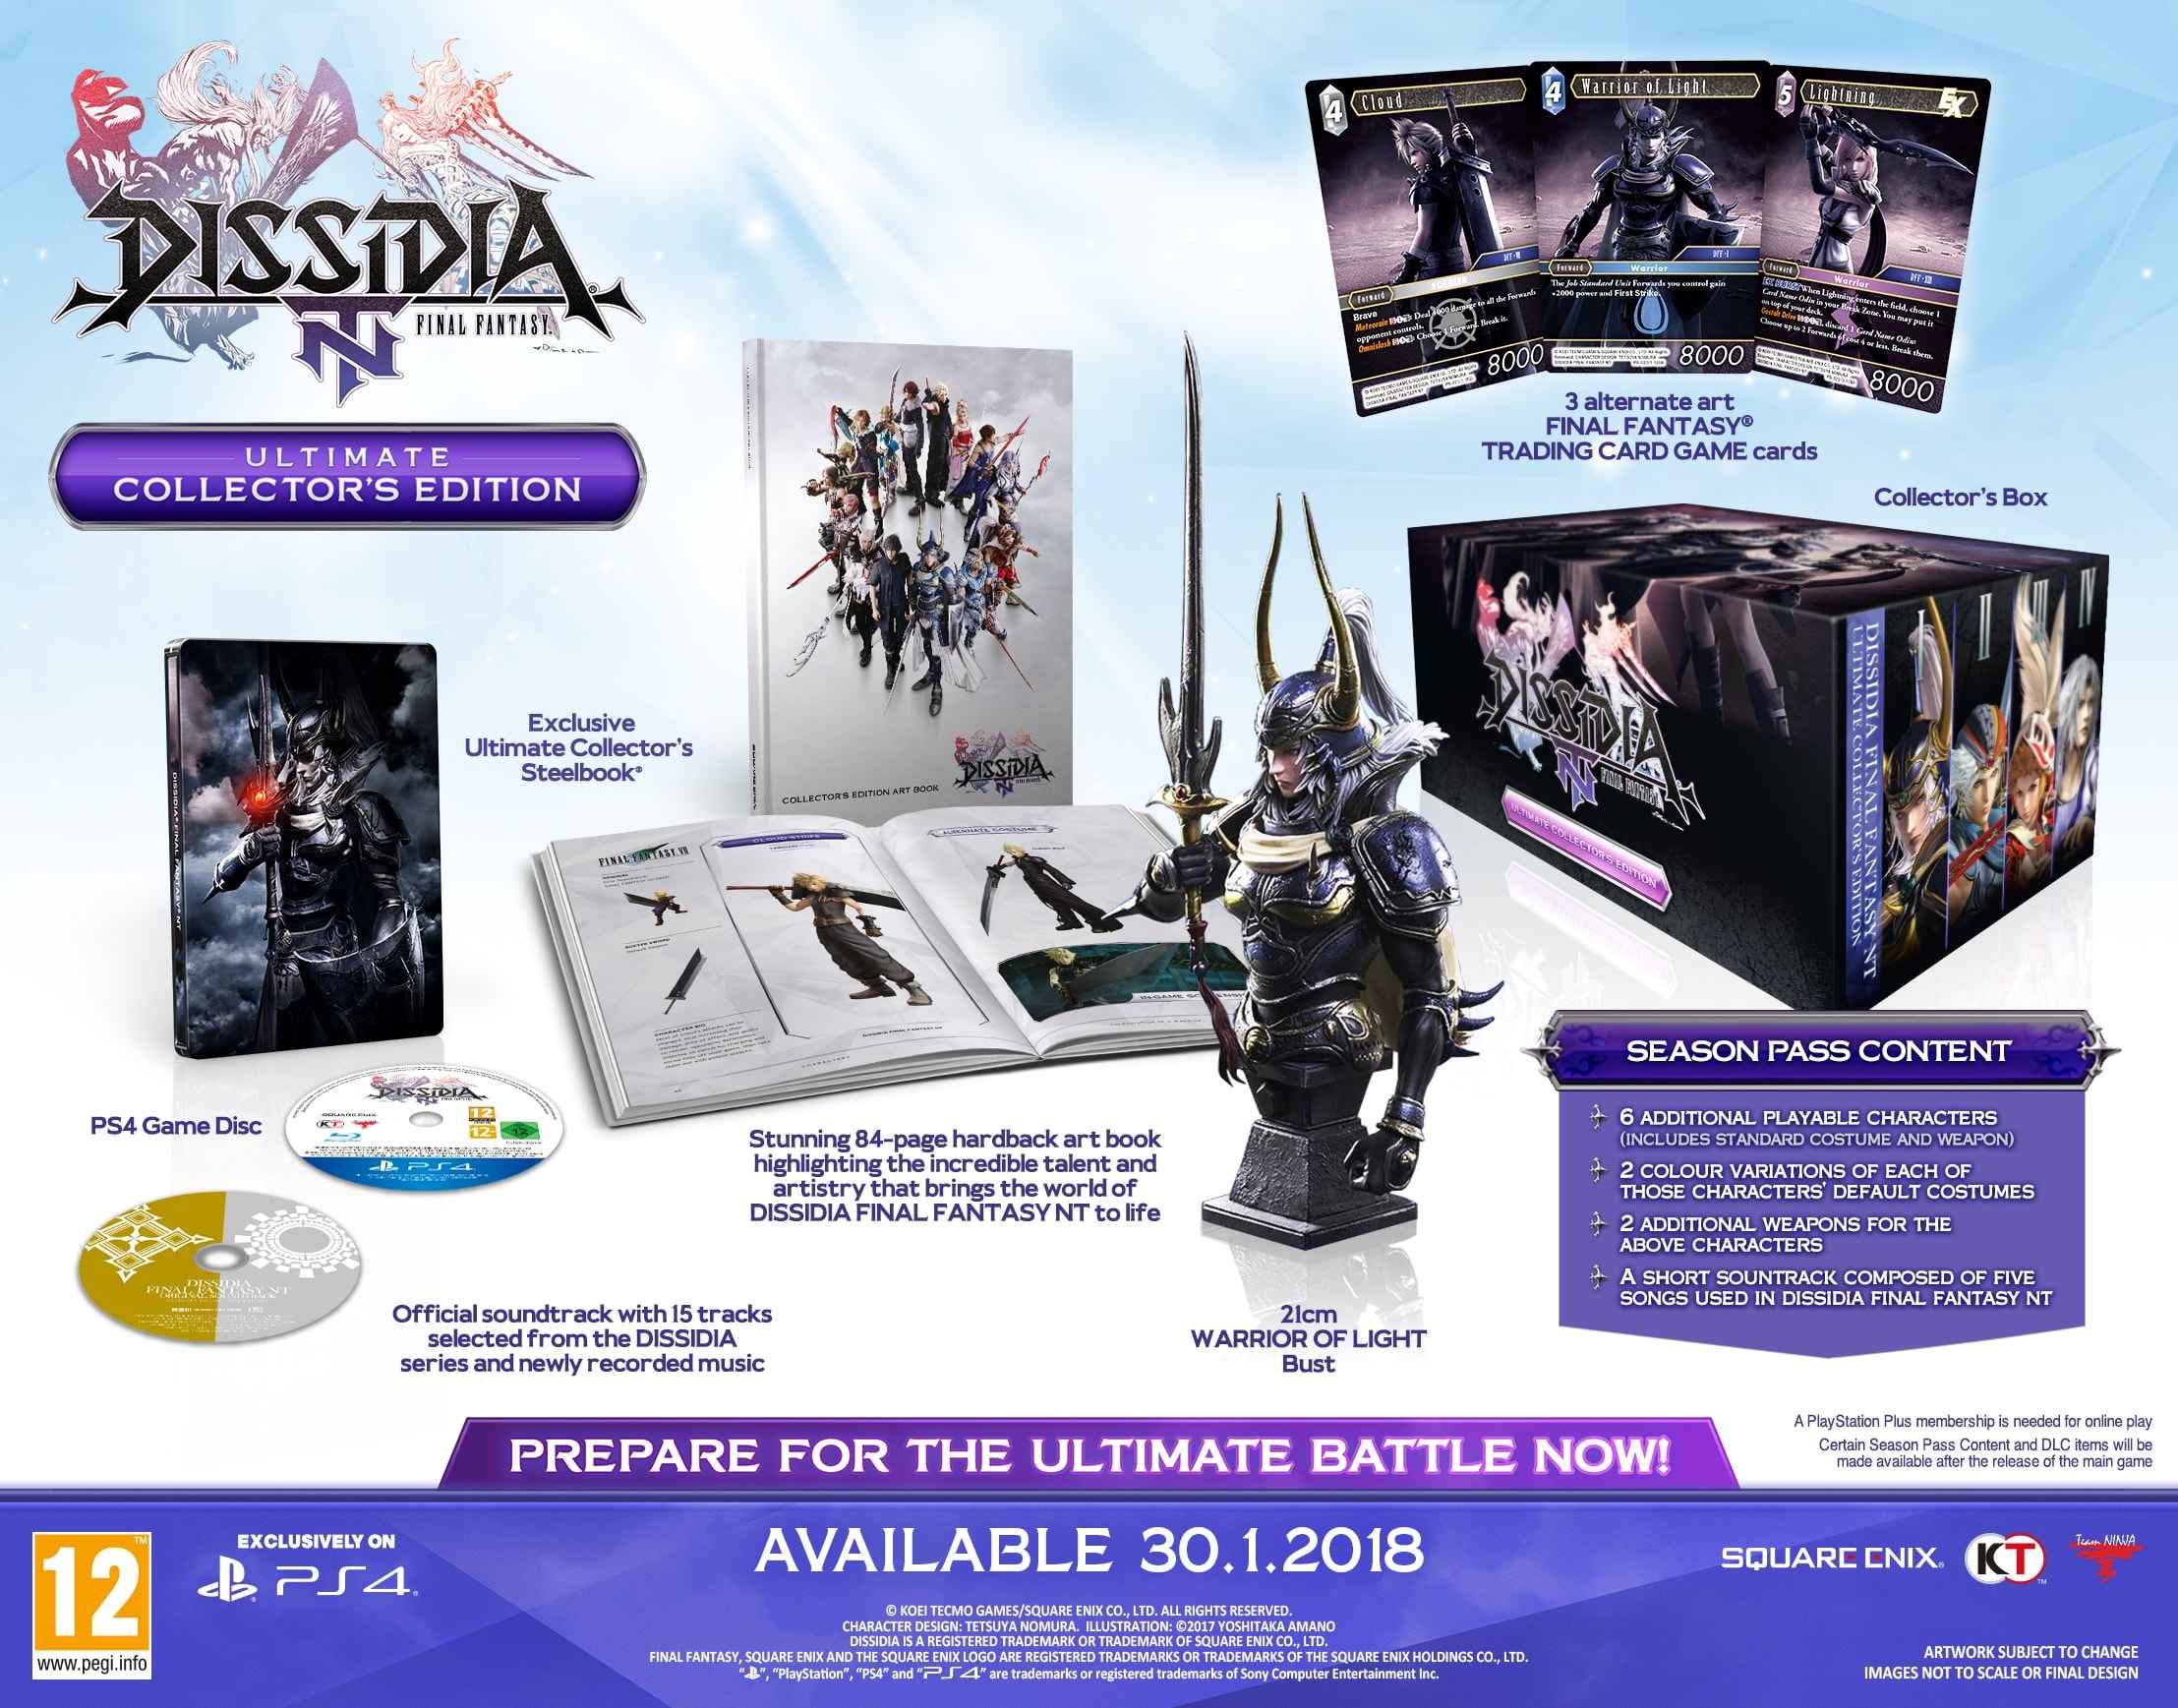 dissidia ps4 collector's edition